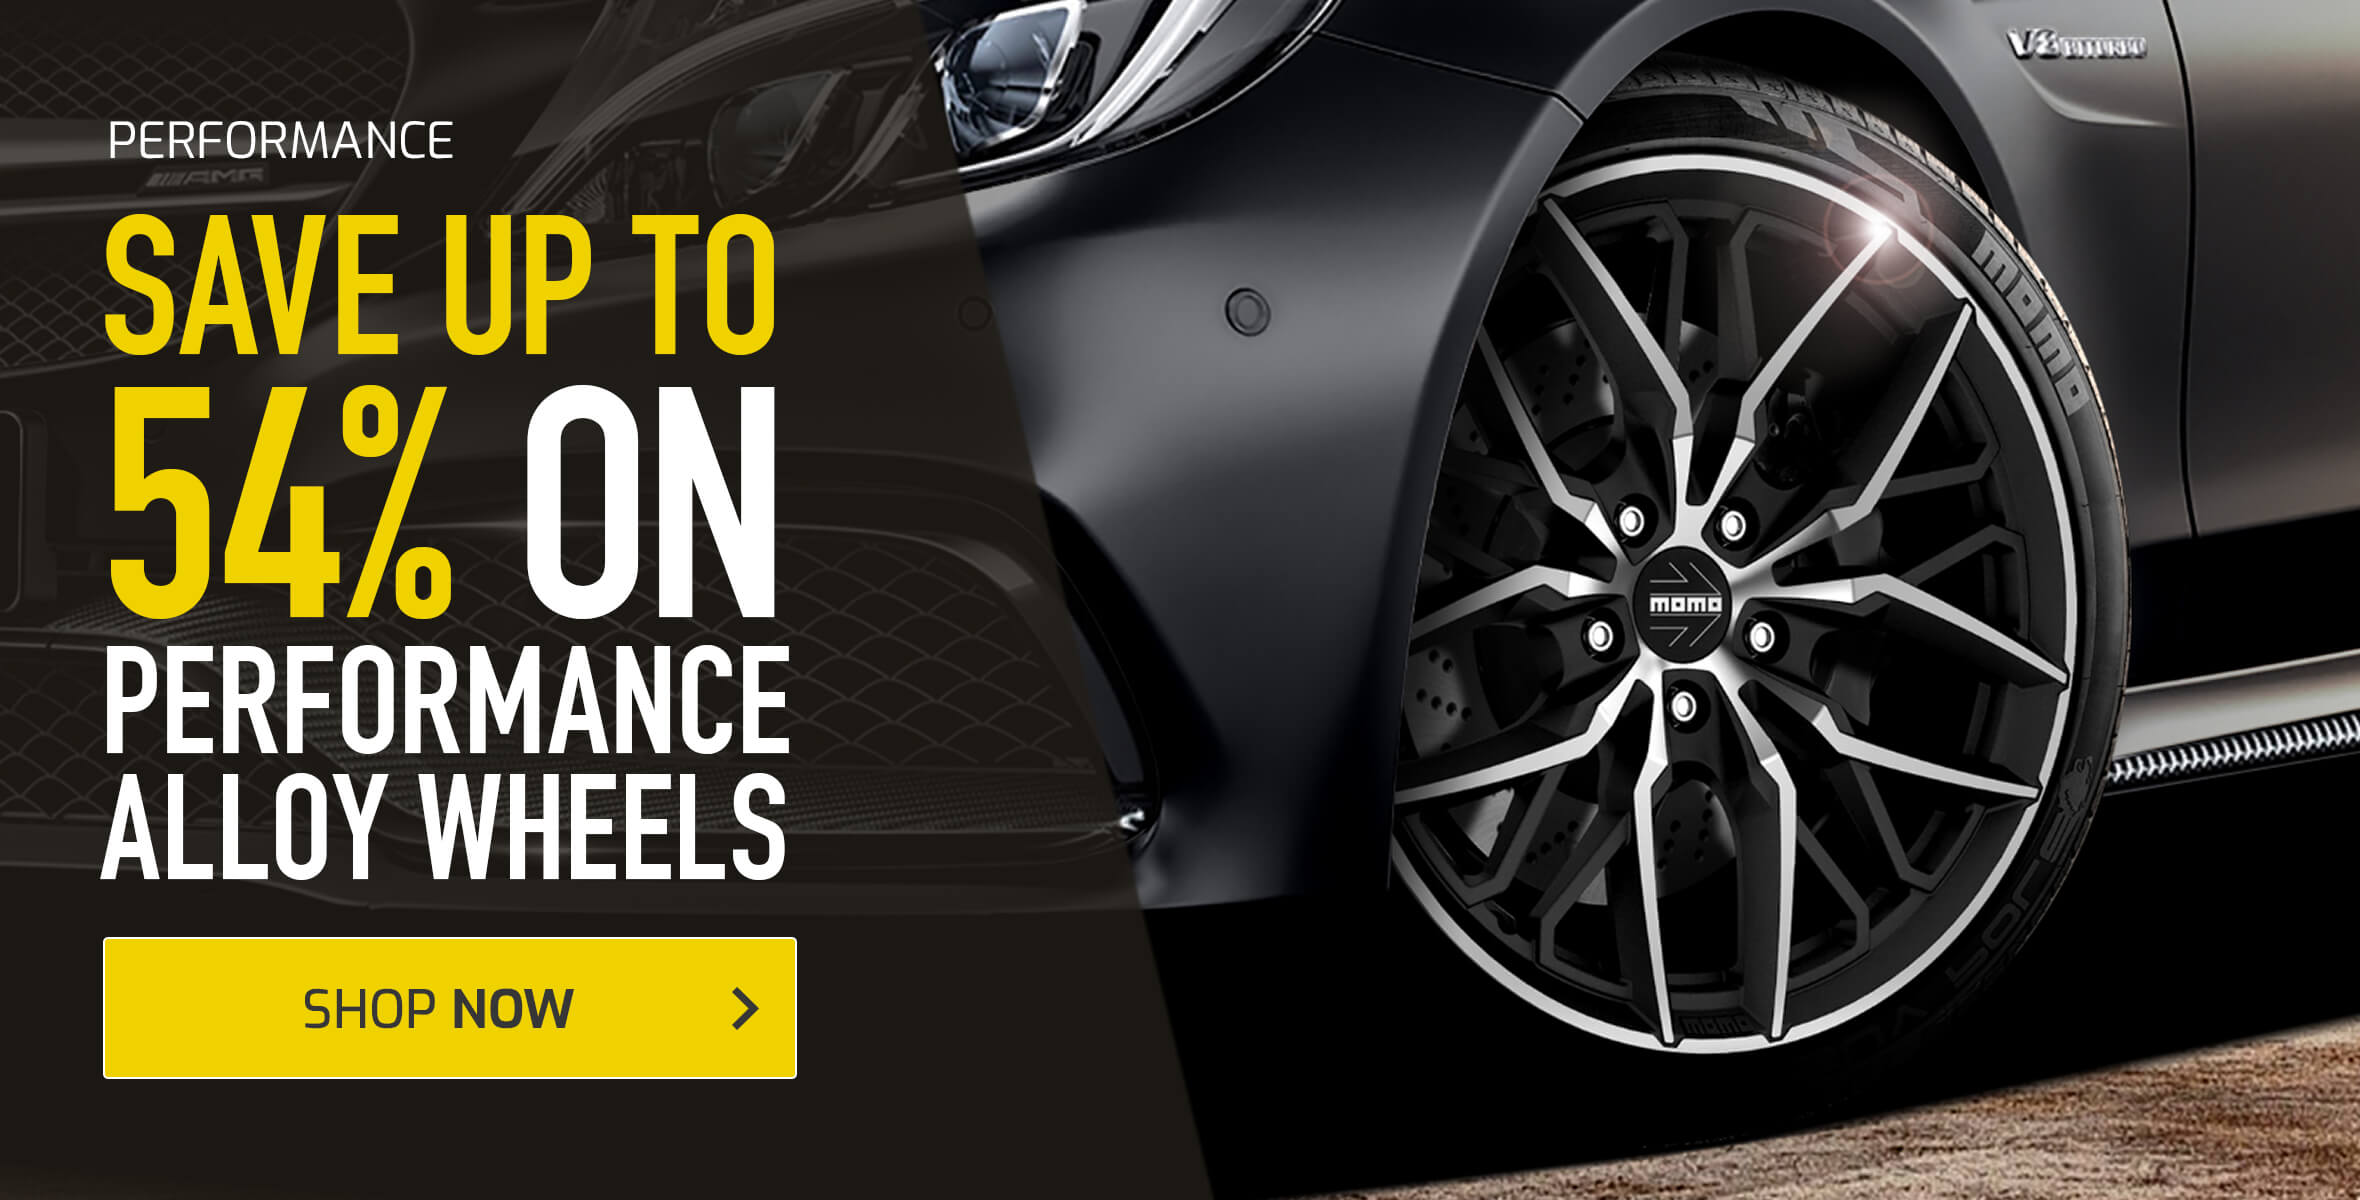 Save up to 54% on Performance Alloy Wheels